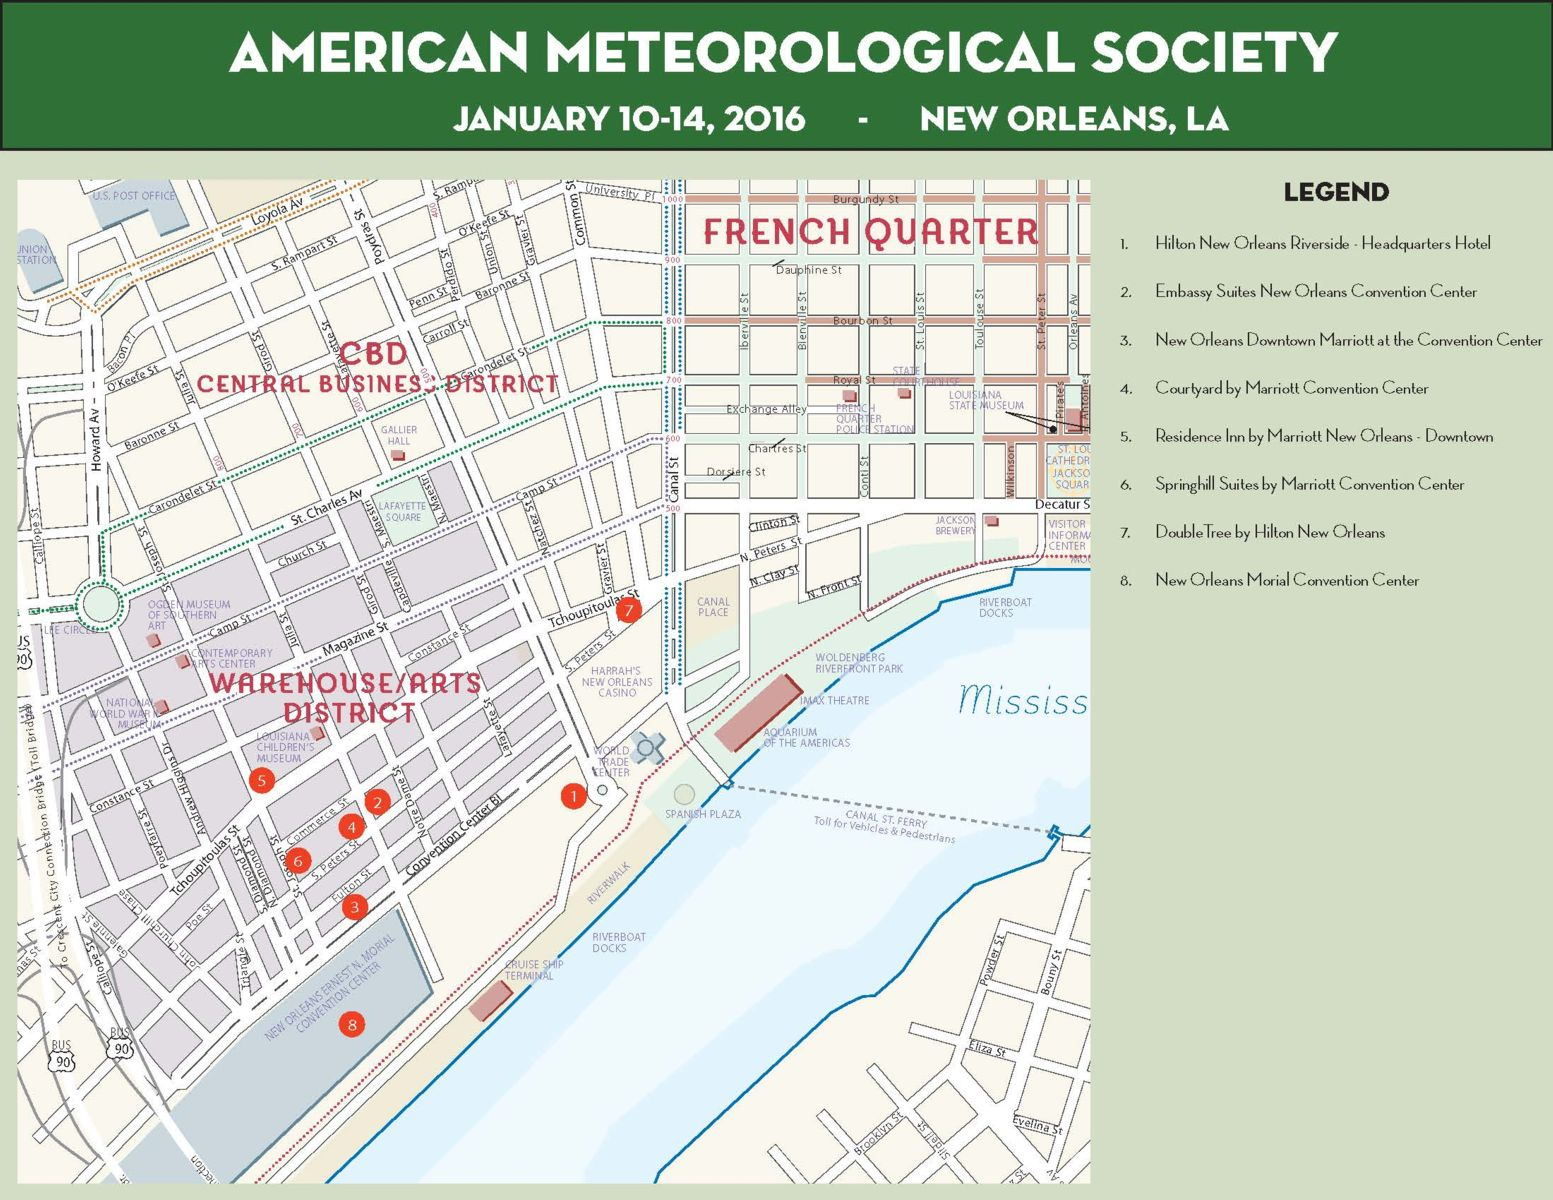 french quarter map with attractions   29 9579091166877 besides City Map Printable Map Of Map Of Us Cities New Orleans New Orleans together with  together with New Orleans Cruise Parking Options  Prices  and Map   Cruzely as well  moreover Hotel Map New City Maps French Quarter Downtown Orleans also HITES 2012 also Hotel Reservations   AES Annual Meeting additionally Map   Location   The Prytania Park Hotel further Hilton New Orleans Riverside – Downtown Hotel additionally plimentary Shuttle Information   Mardi Gras World moreover  in addition French Quarter Hotels Map   French Quarter Hotels furthermore Hotels in New Orleans   Omni Royal Orleans moreover Hotel Map   2016 AMS Annual Meeting likewise 50 Map Of New orleans Hotels Xm6c – espiritual info. on hotel map new orleans